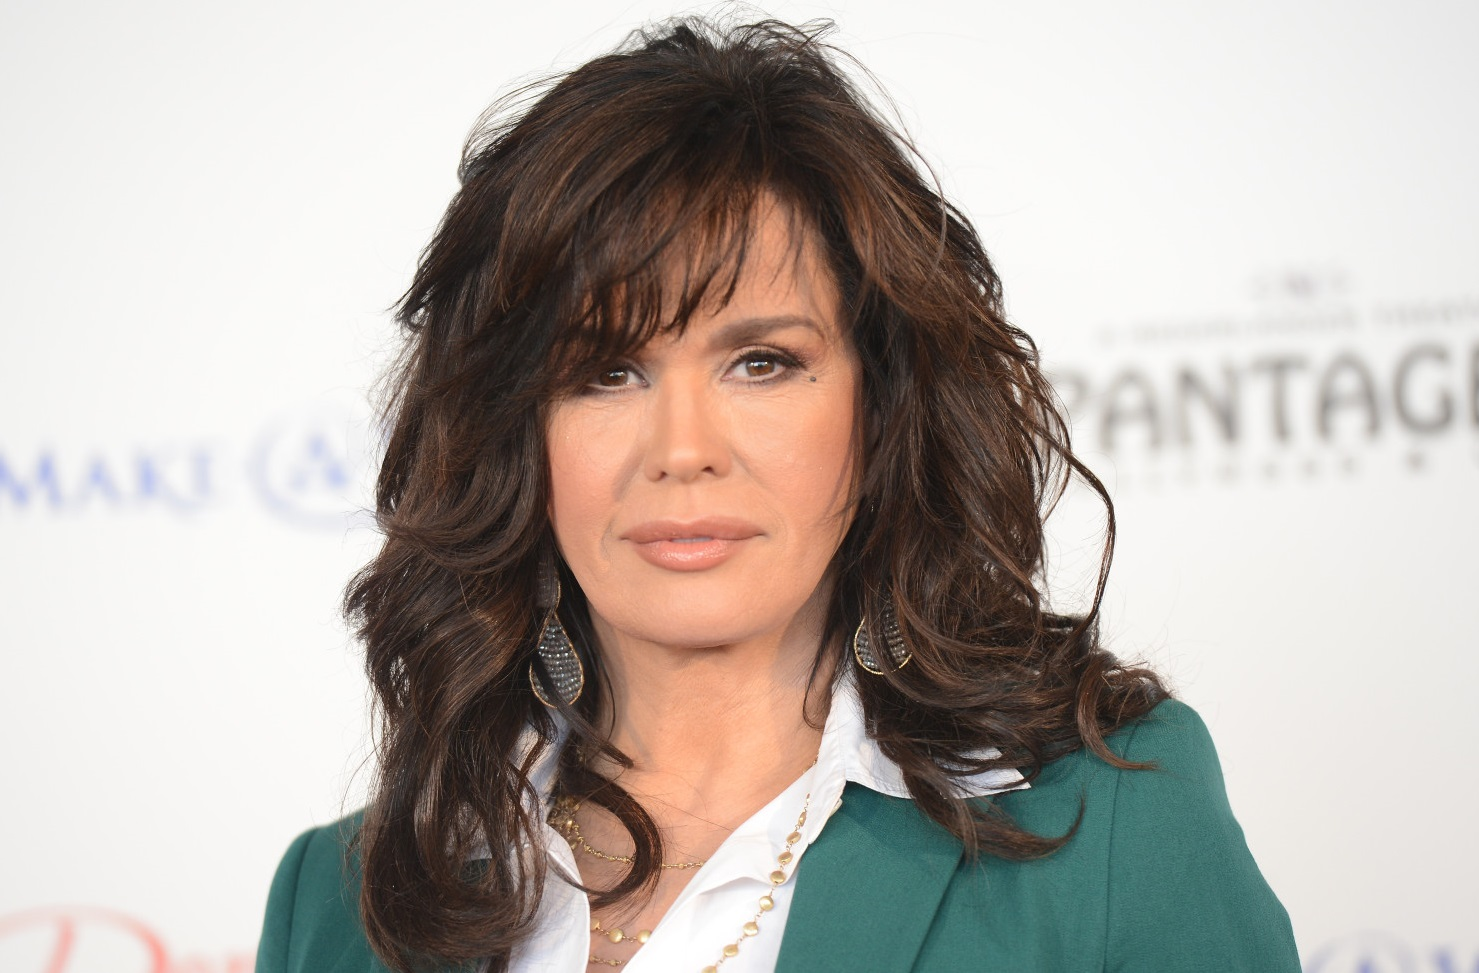 Marie Osmond Family Pictures, Husband, Children, Age, Height